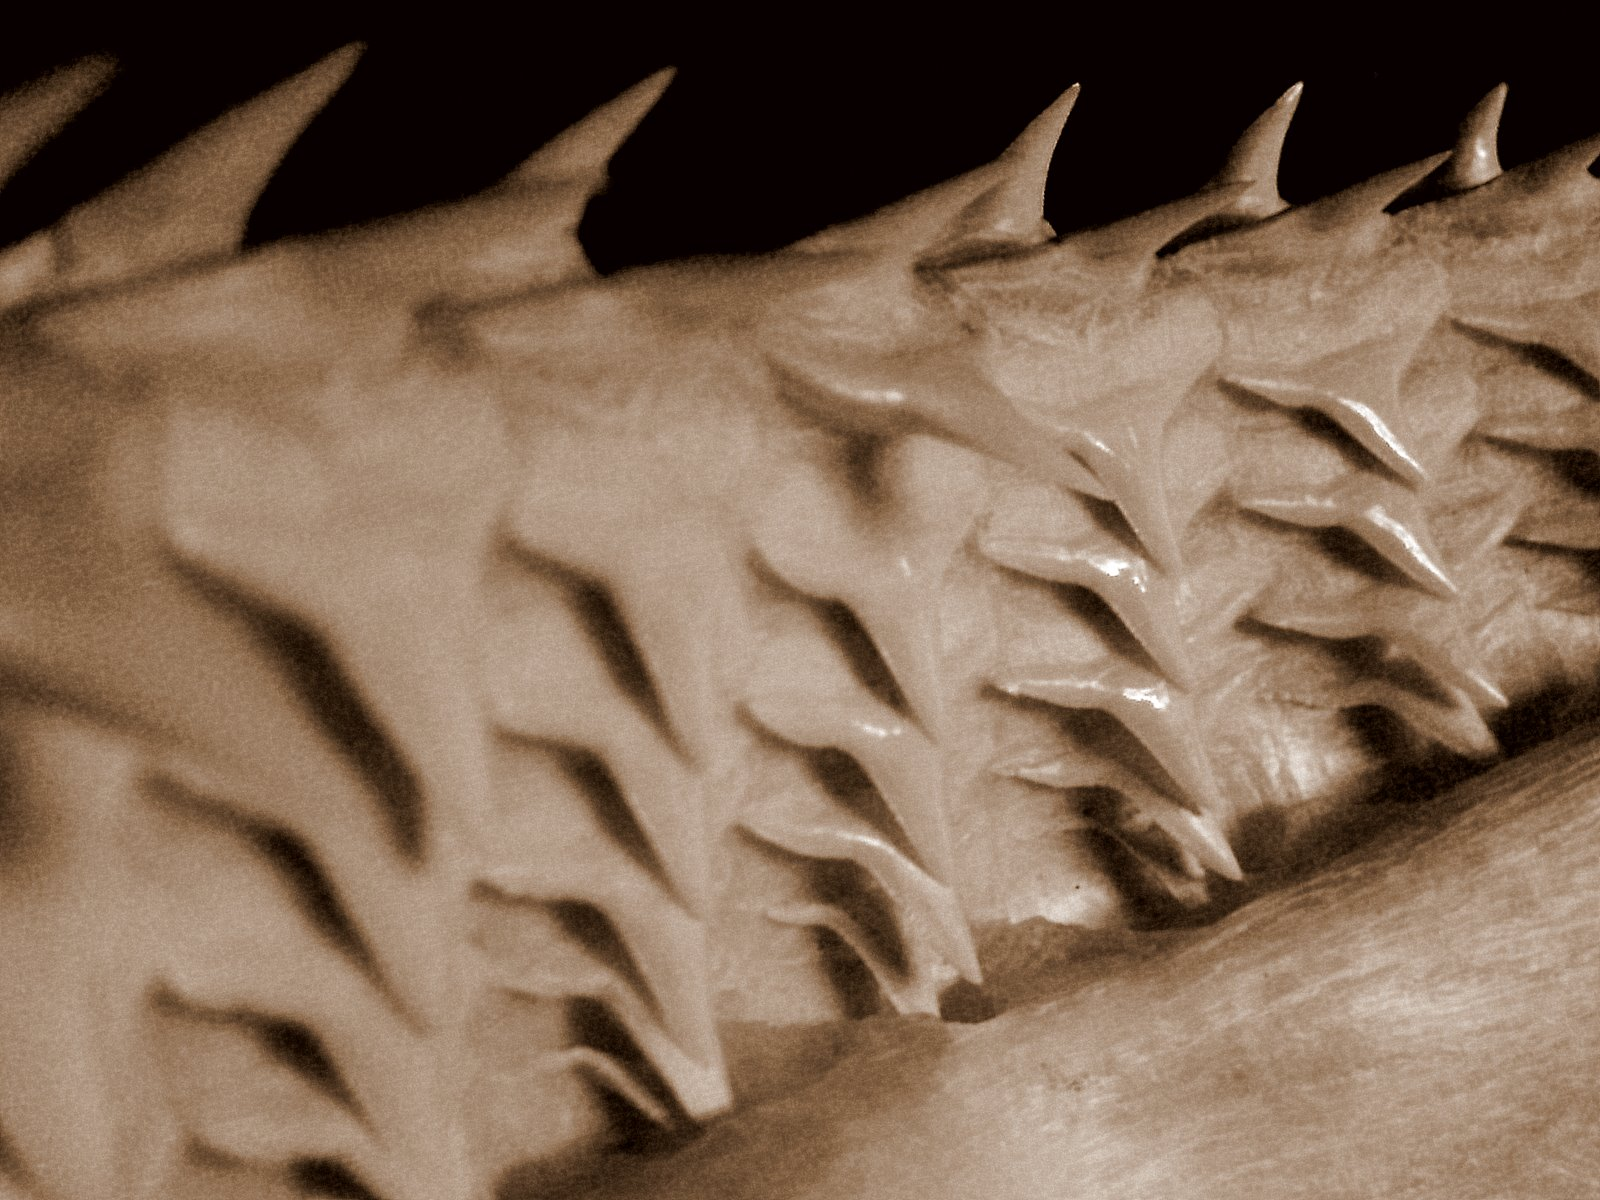 rows of shark teeth mouth of a great white you can see rows of teethPictures Of Sharks Teeth